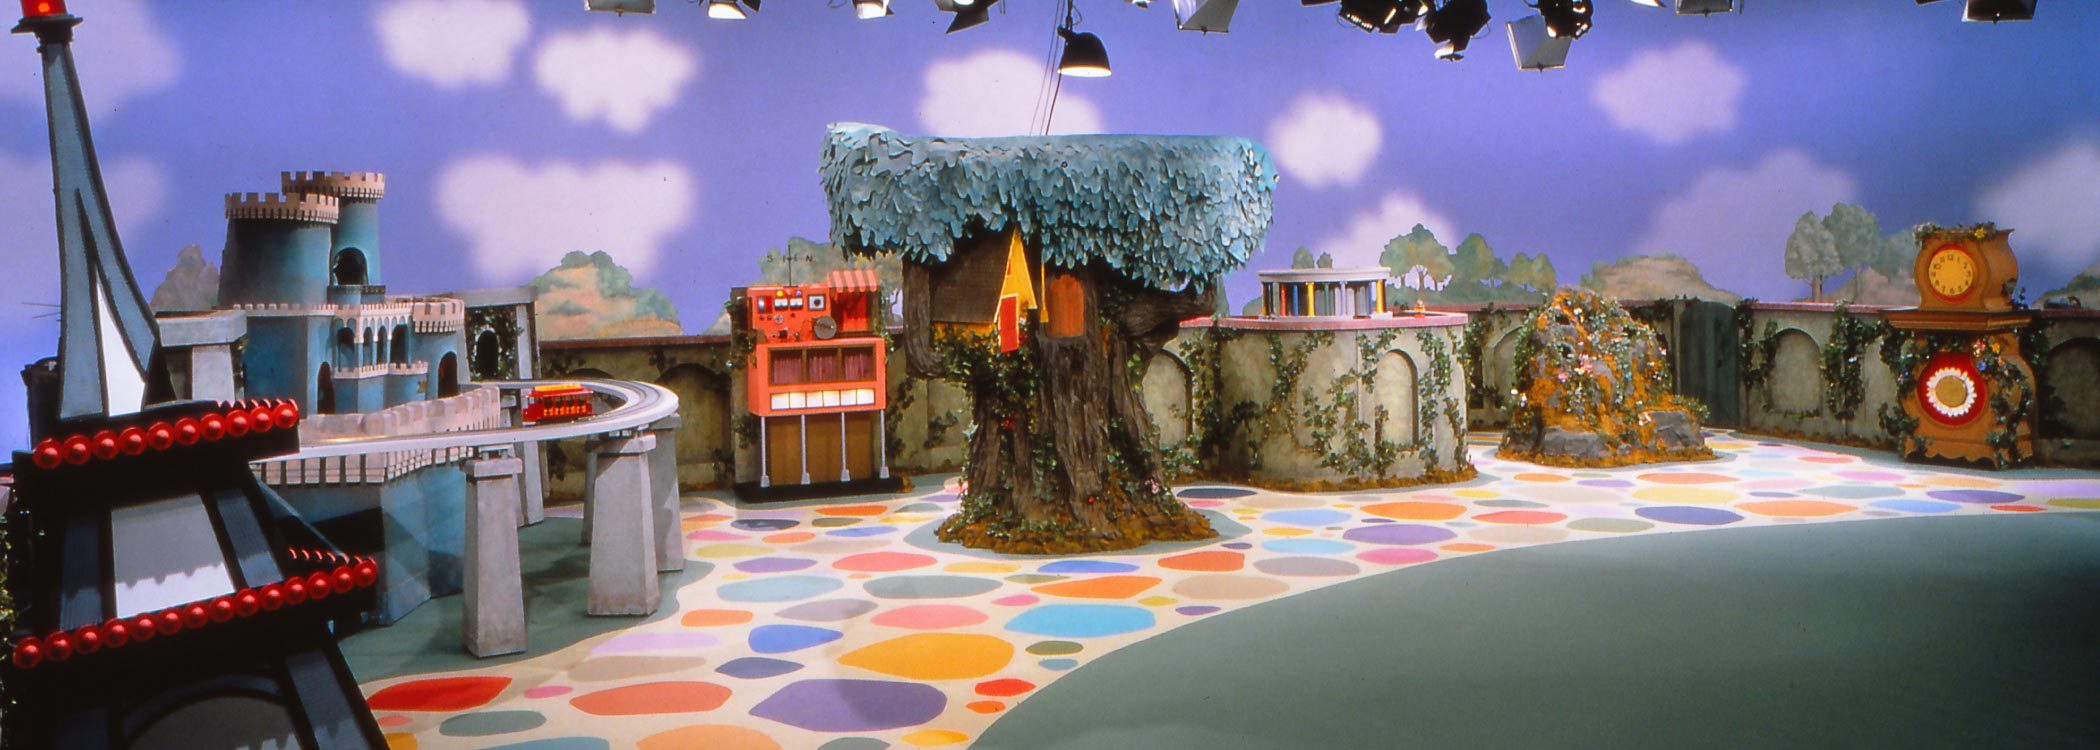 Places Mister Rogers Neighborhood